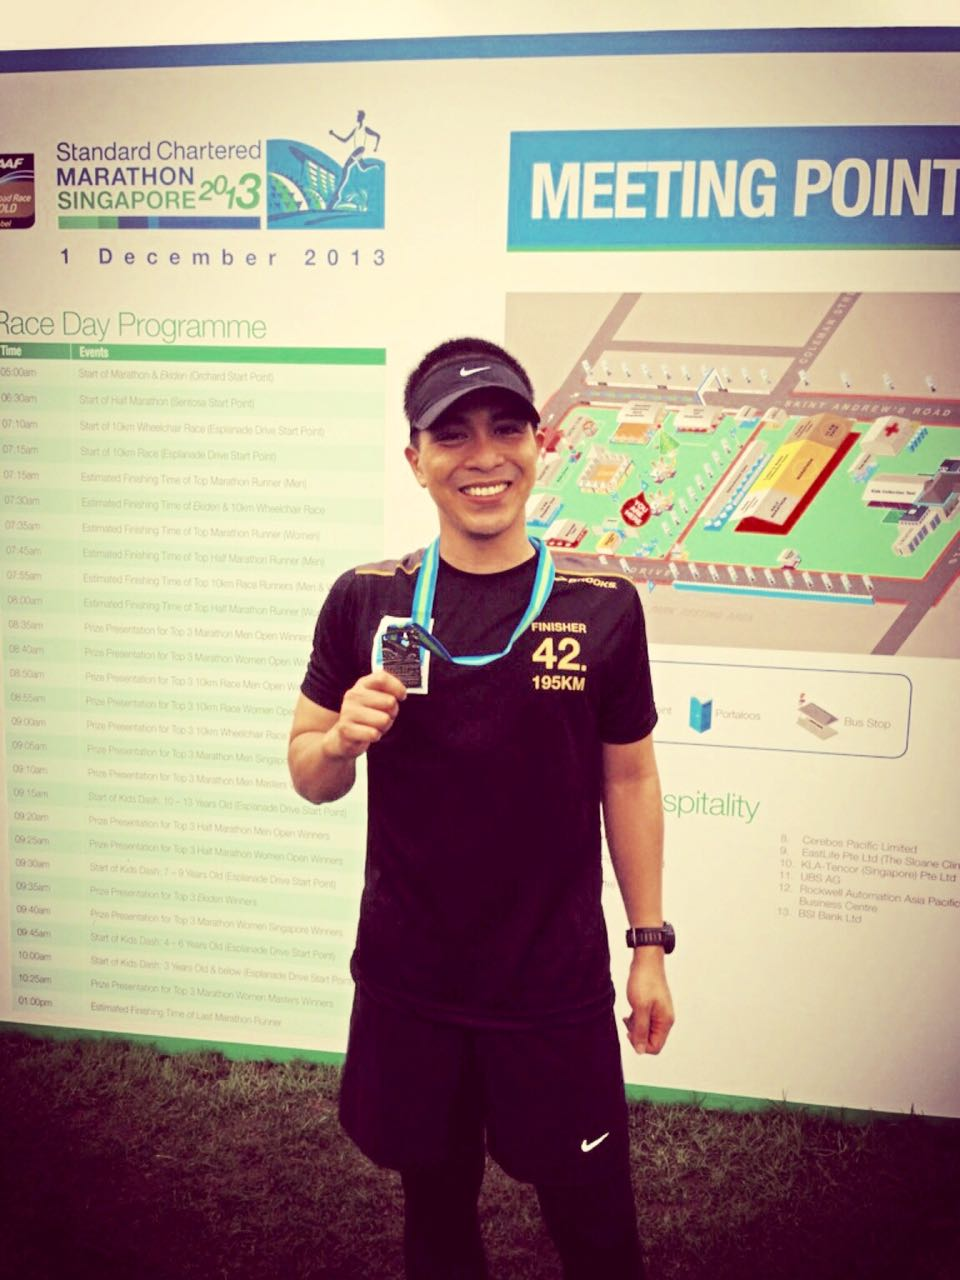 Singapore 2013. My first full marathon ever!